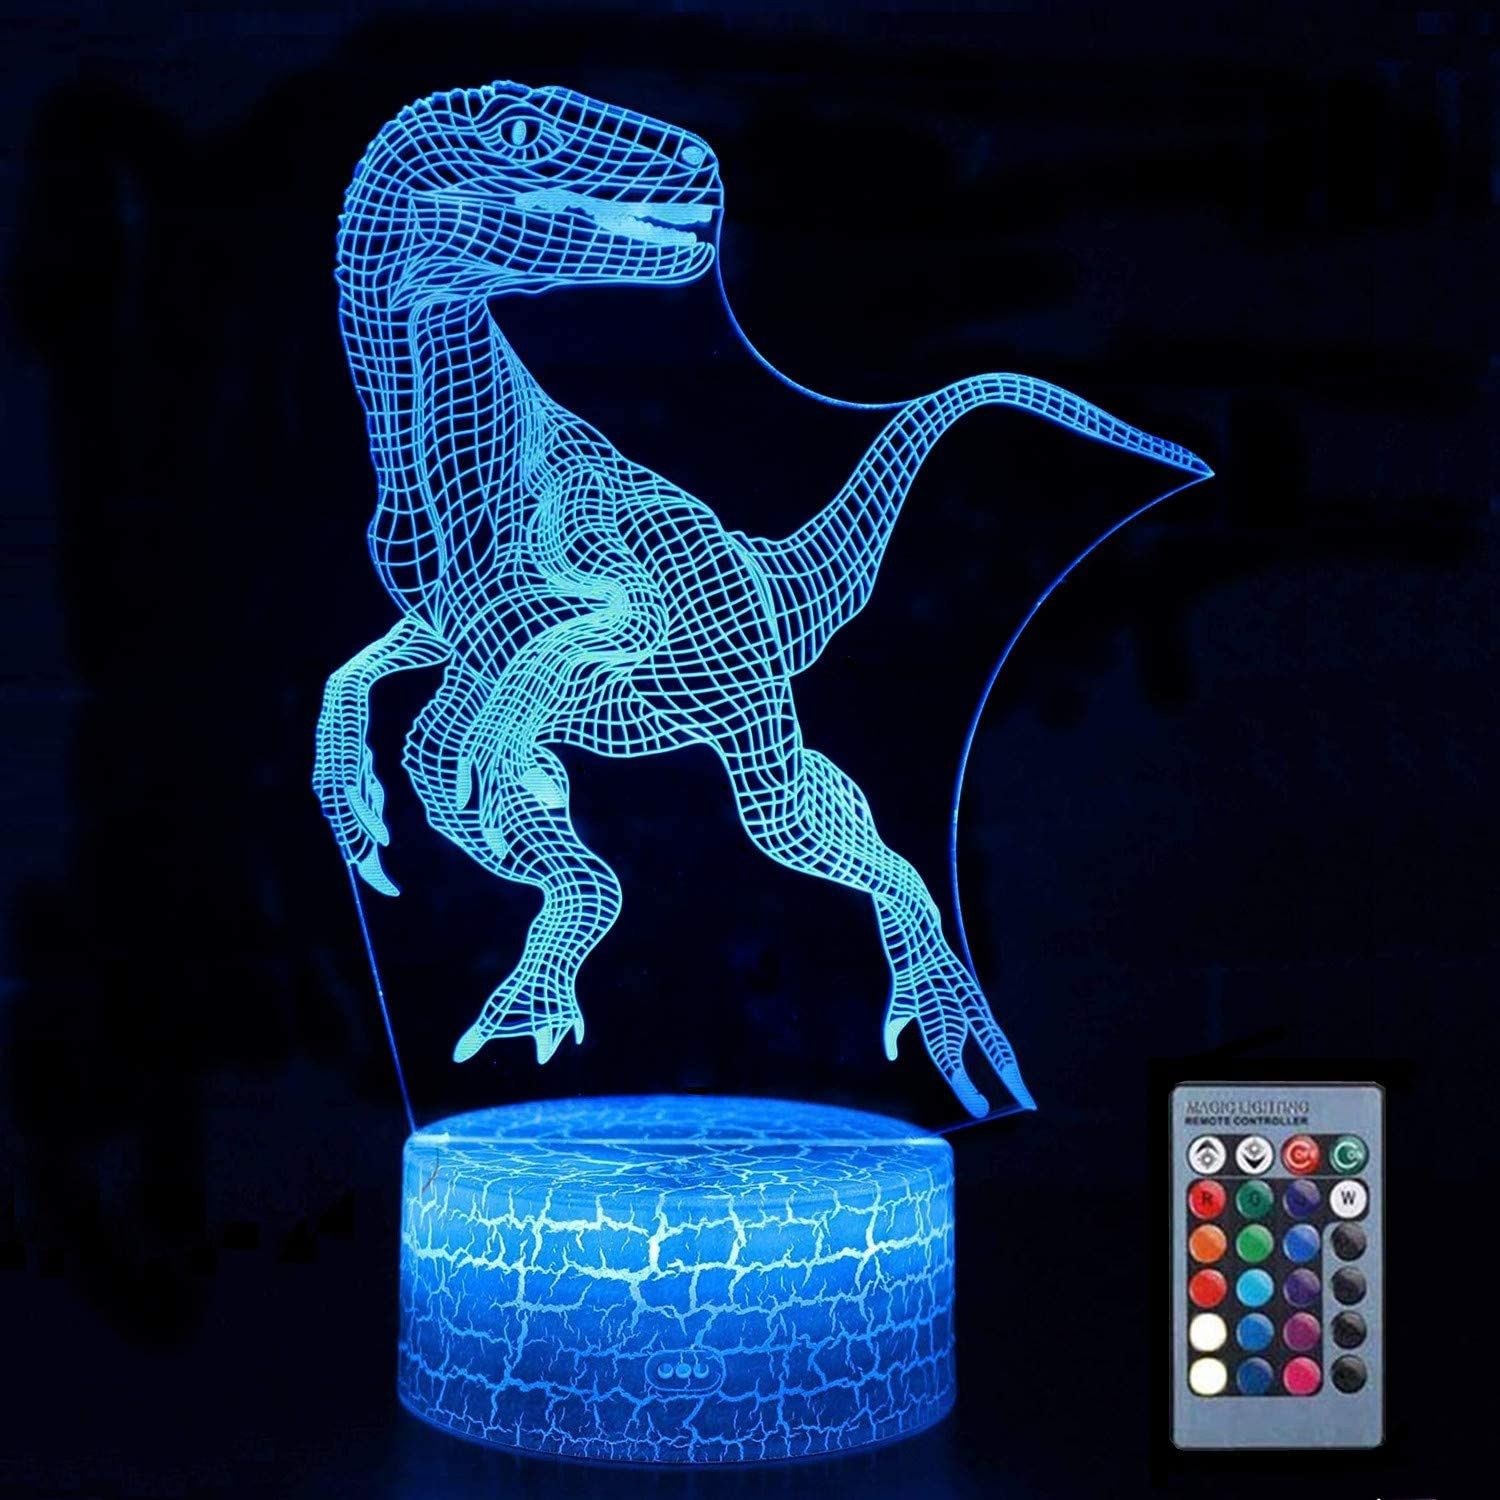 Zoohao 3D Dinosaur Night Light,3D visualization Illusion LED Table Light with Touch Button,ABS Base&Acrylic Flat&USB Charger for Room Decorative or Gifts for Friends/Kids